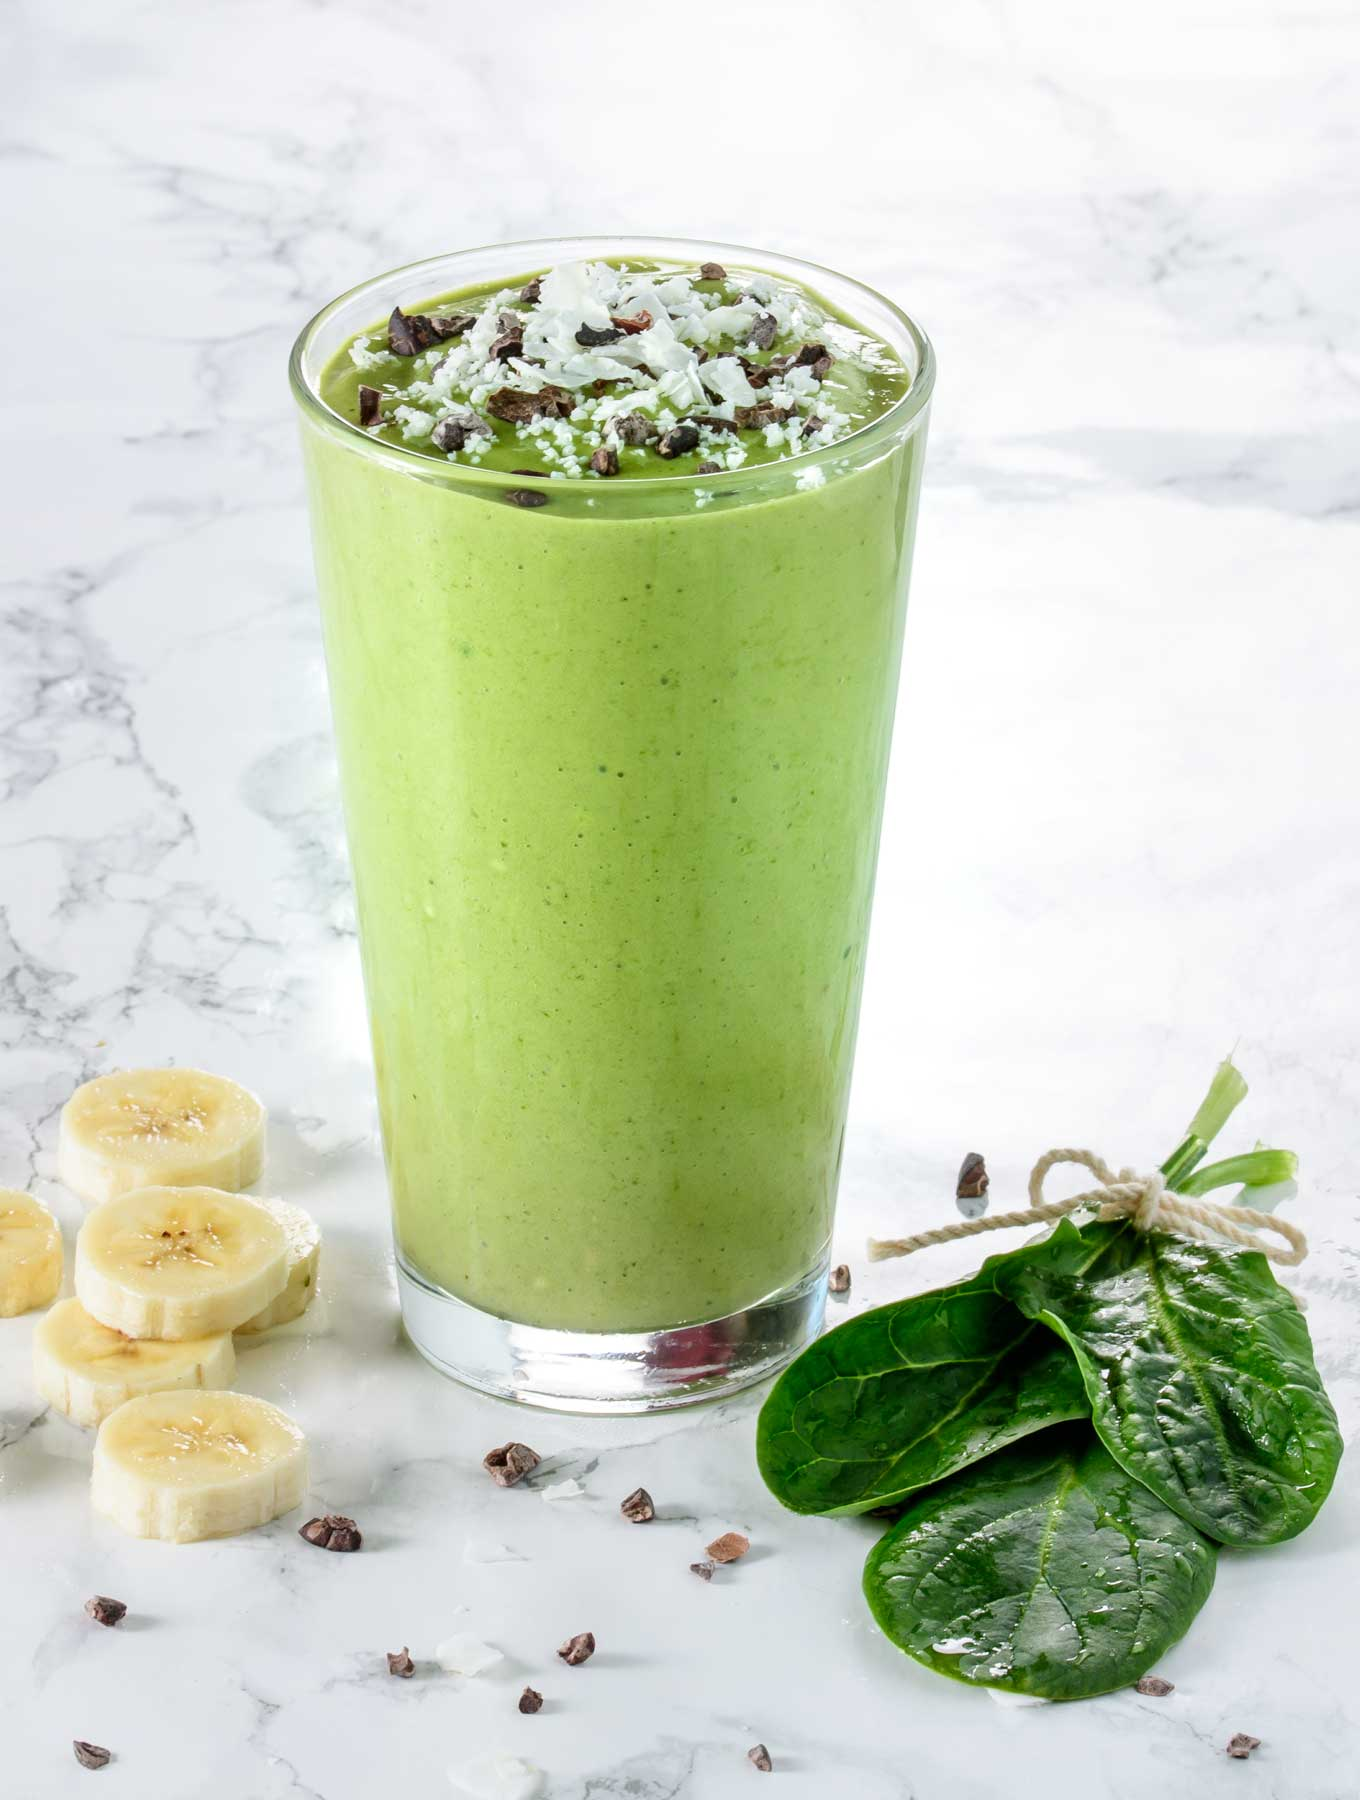 How to make the perfect Green Matcha Protein Smoothie , Great With Alphatox Matcha Tea Powder Which is All Organic & Natural Japanese Premium Matcha Green Tea.  At Only 165 Calories with 42g of Protein!